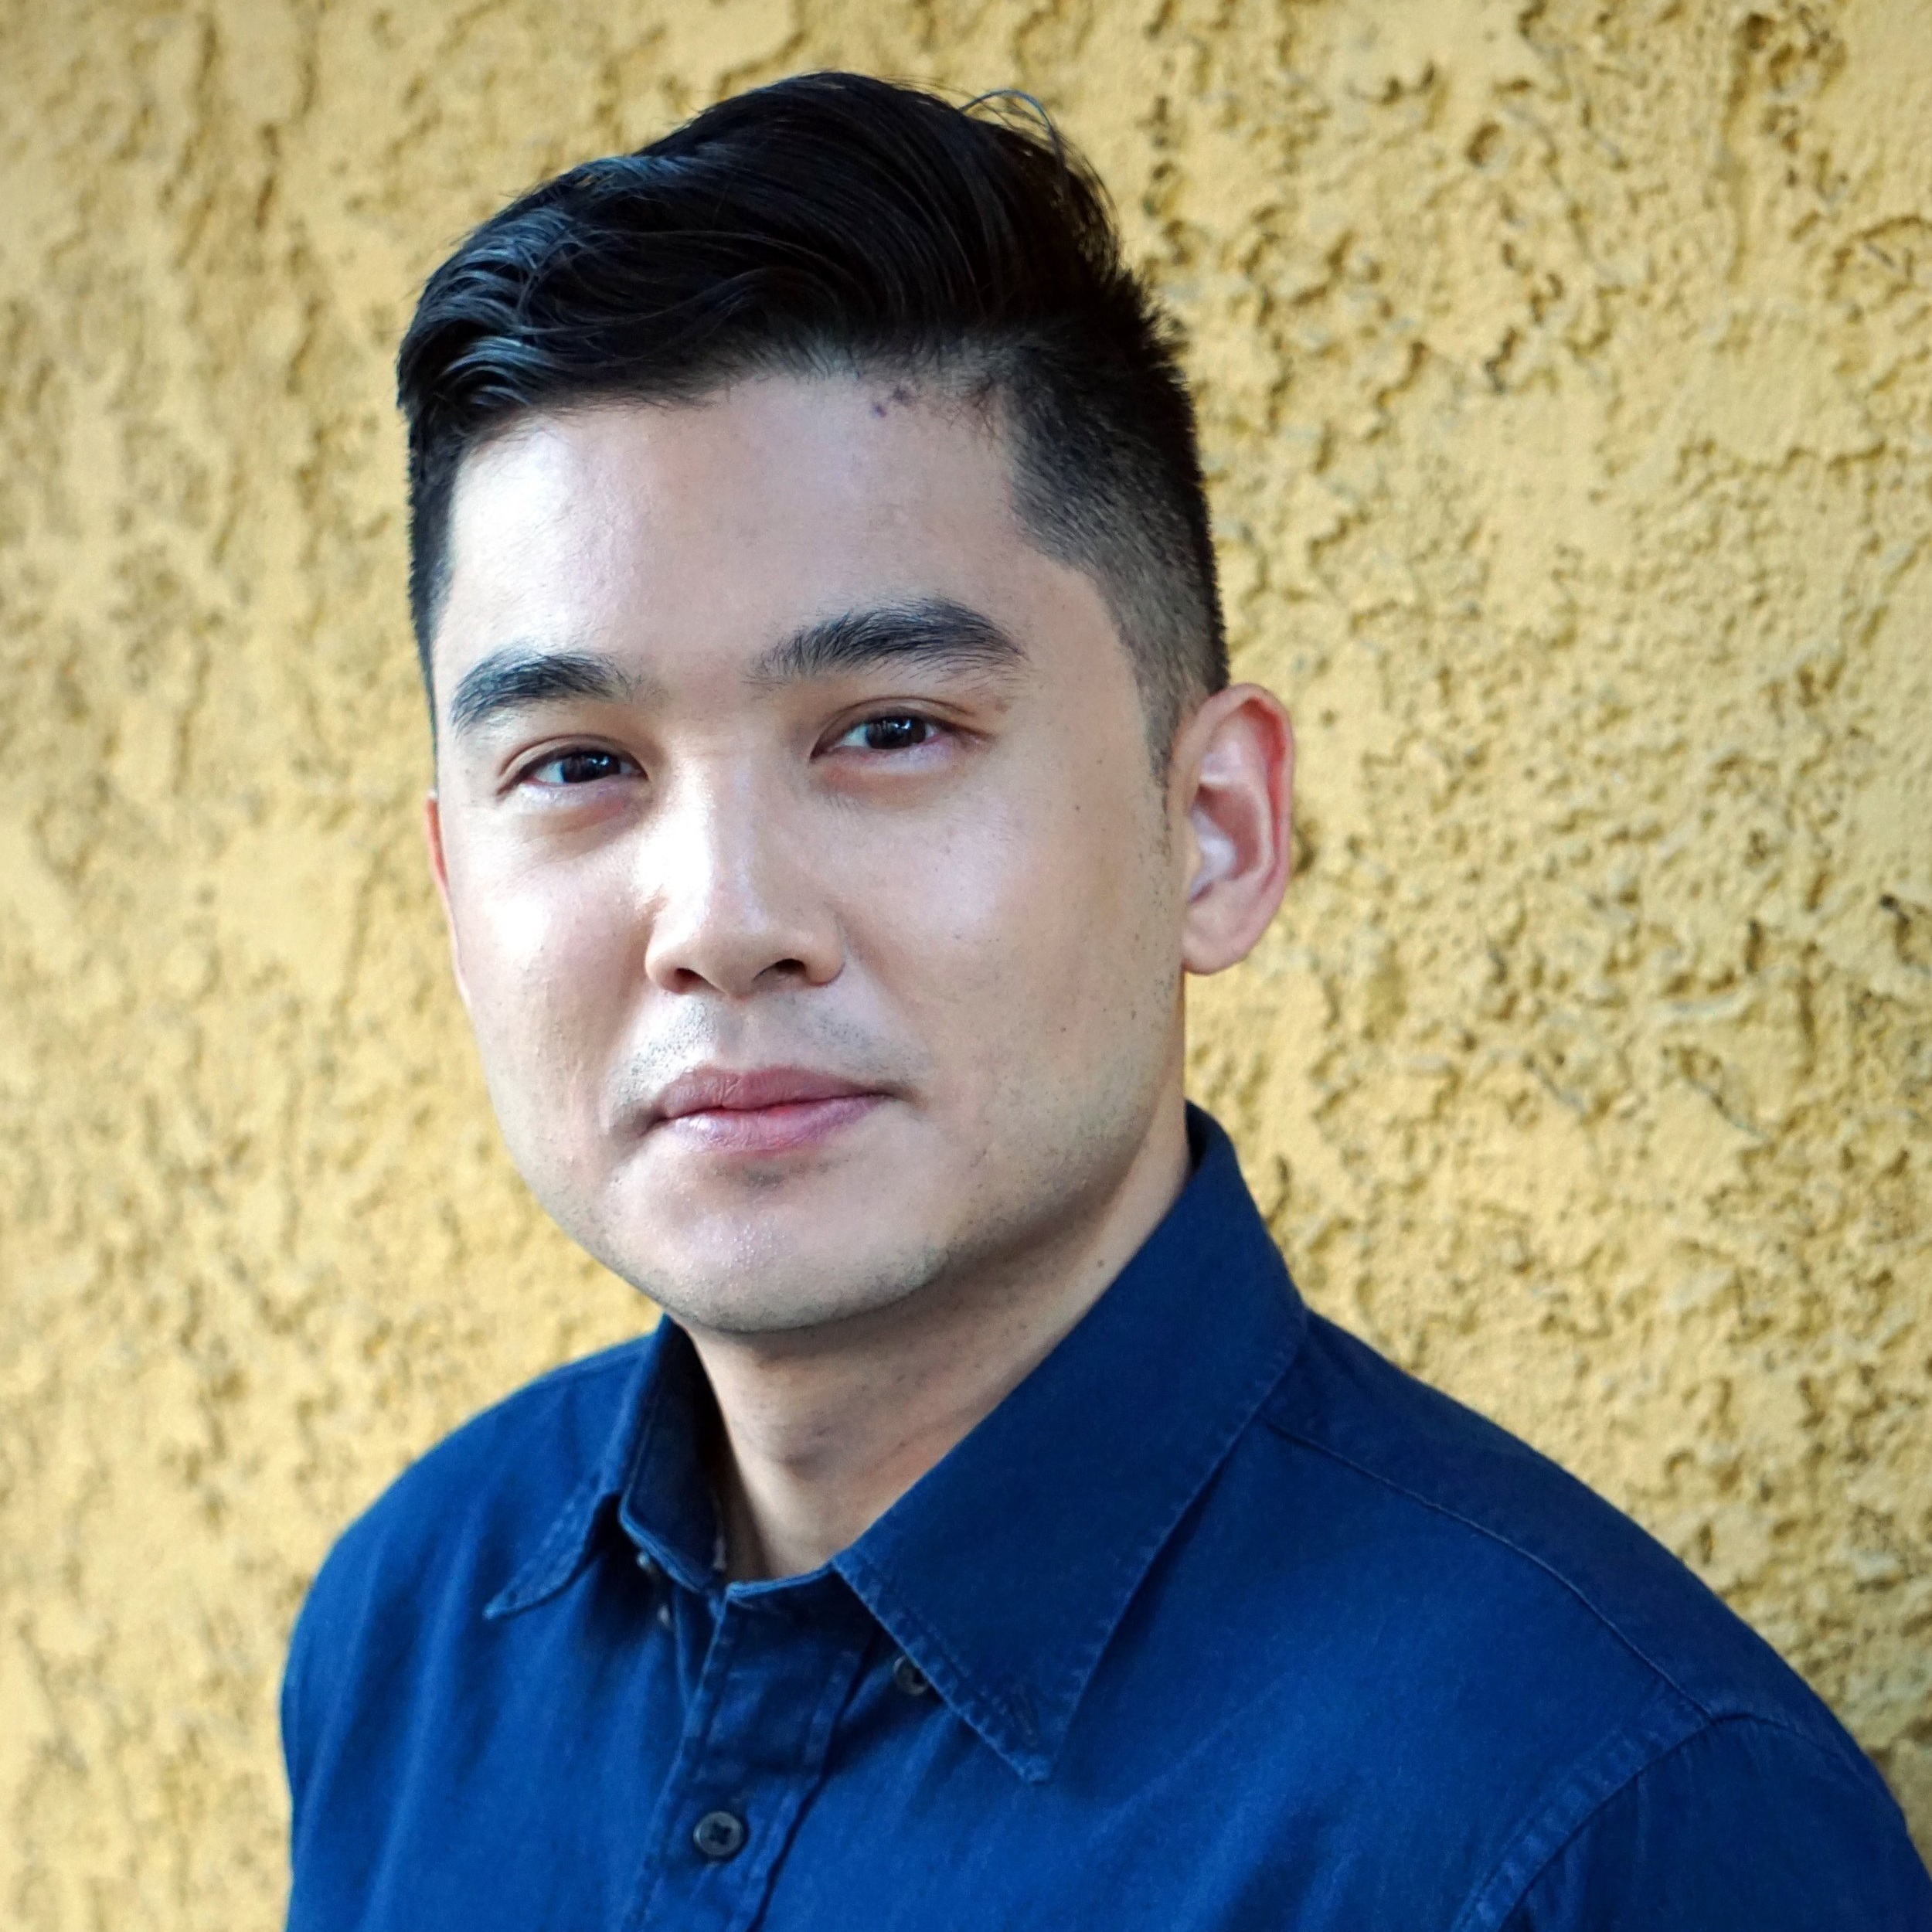 Brian Shin  ('17) was promoted to Story Editor from Staff Writer on ABC's THE GOOD DOCTOR. Brian is a graduate of the Walt Disney Television Writing Program.